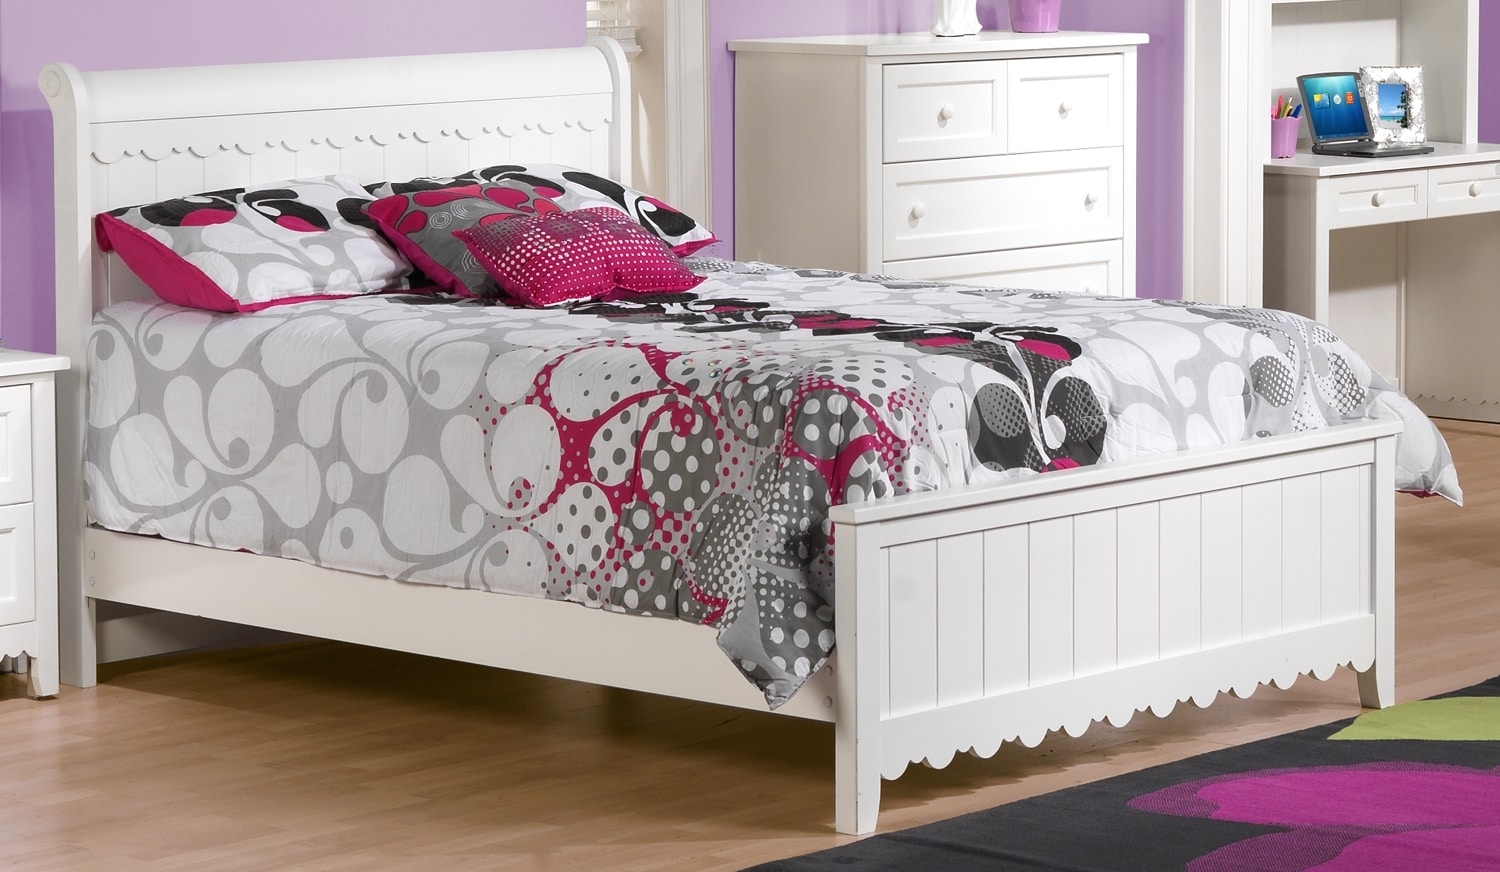 Sweetdreams Twin Bed White Leon 39 S